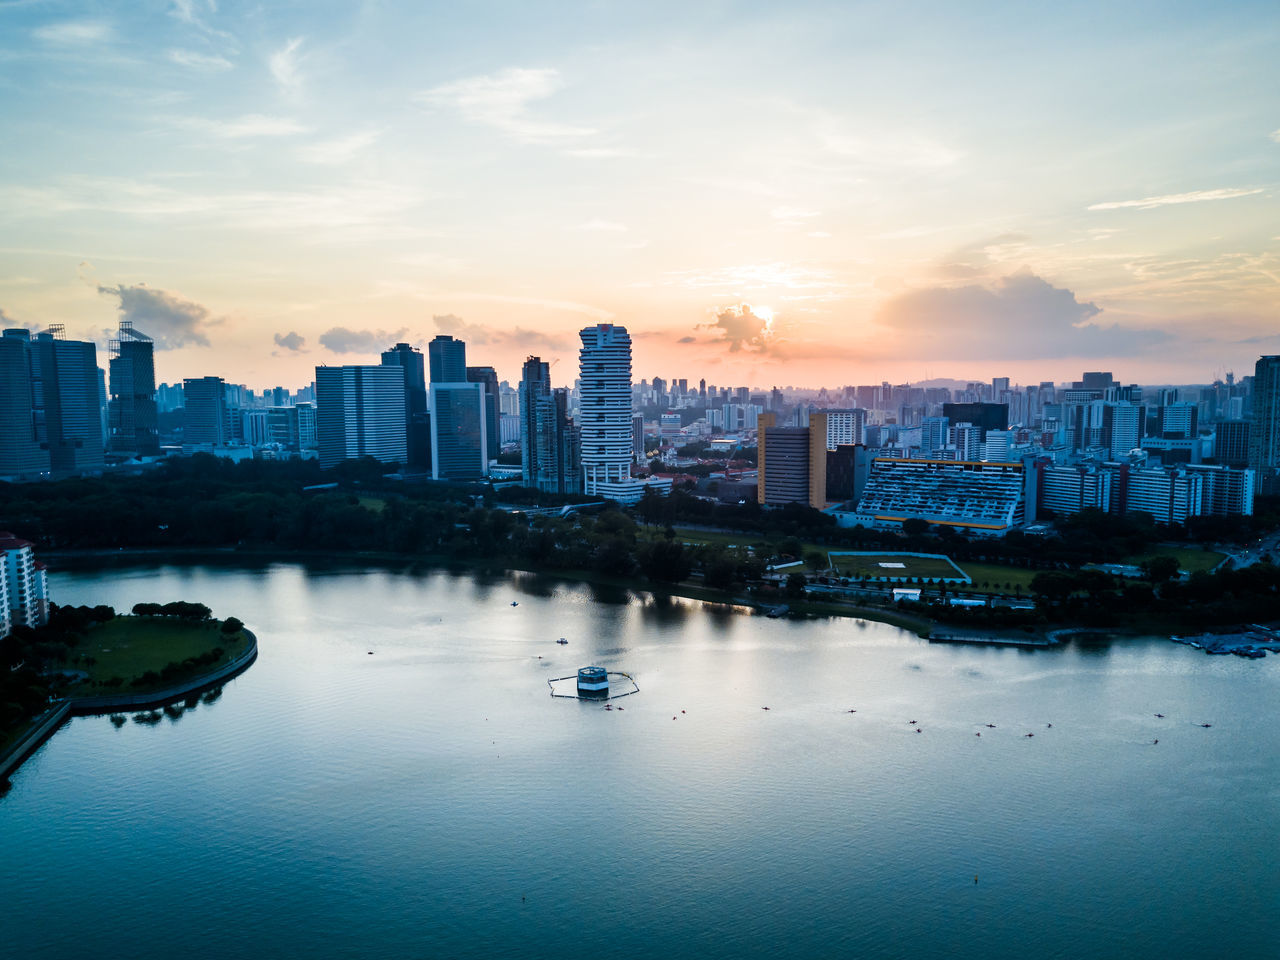 Architecture Building Exterior Built Structure City Cityscape Day Downtown District Drone  Dronephotography Modern Nature Nautical Vessel No People Outdoors River Singapore Sky Skyscraper Sunset Travel Destinations Urban Skyline Water Waterfront